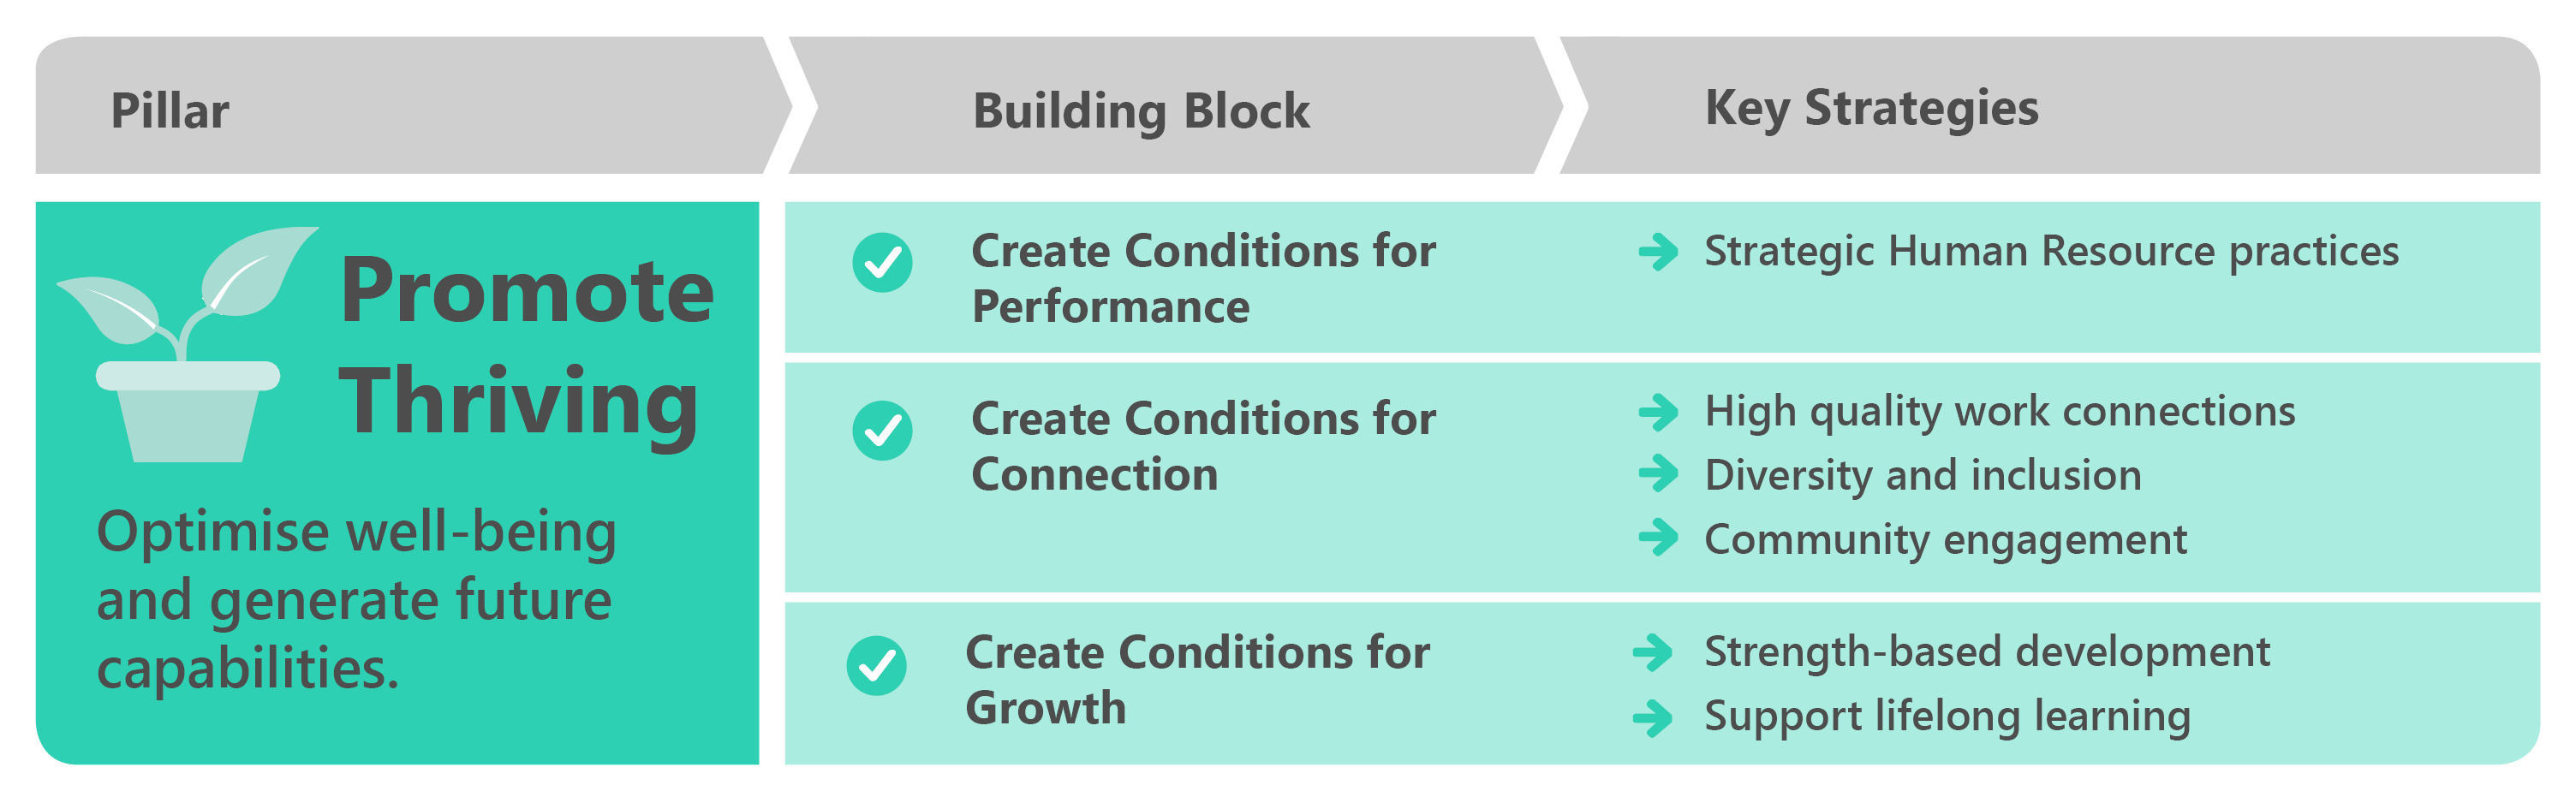 Promote Thriving pillar table showing building blocks, and key strategies.